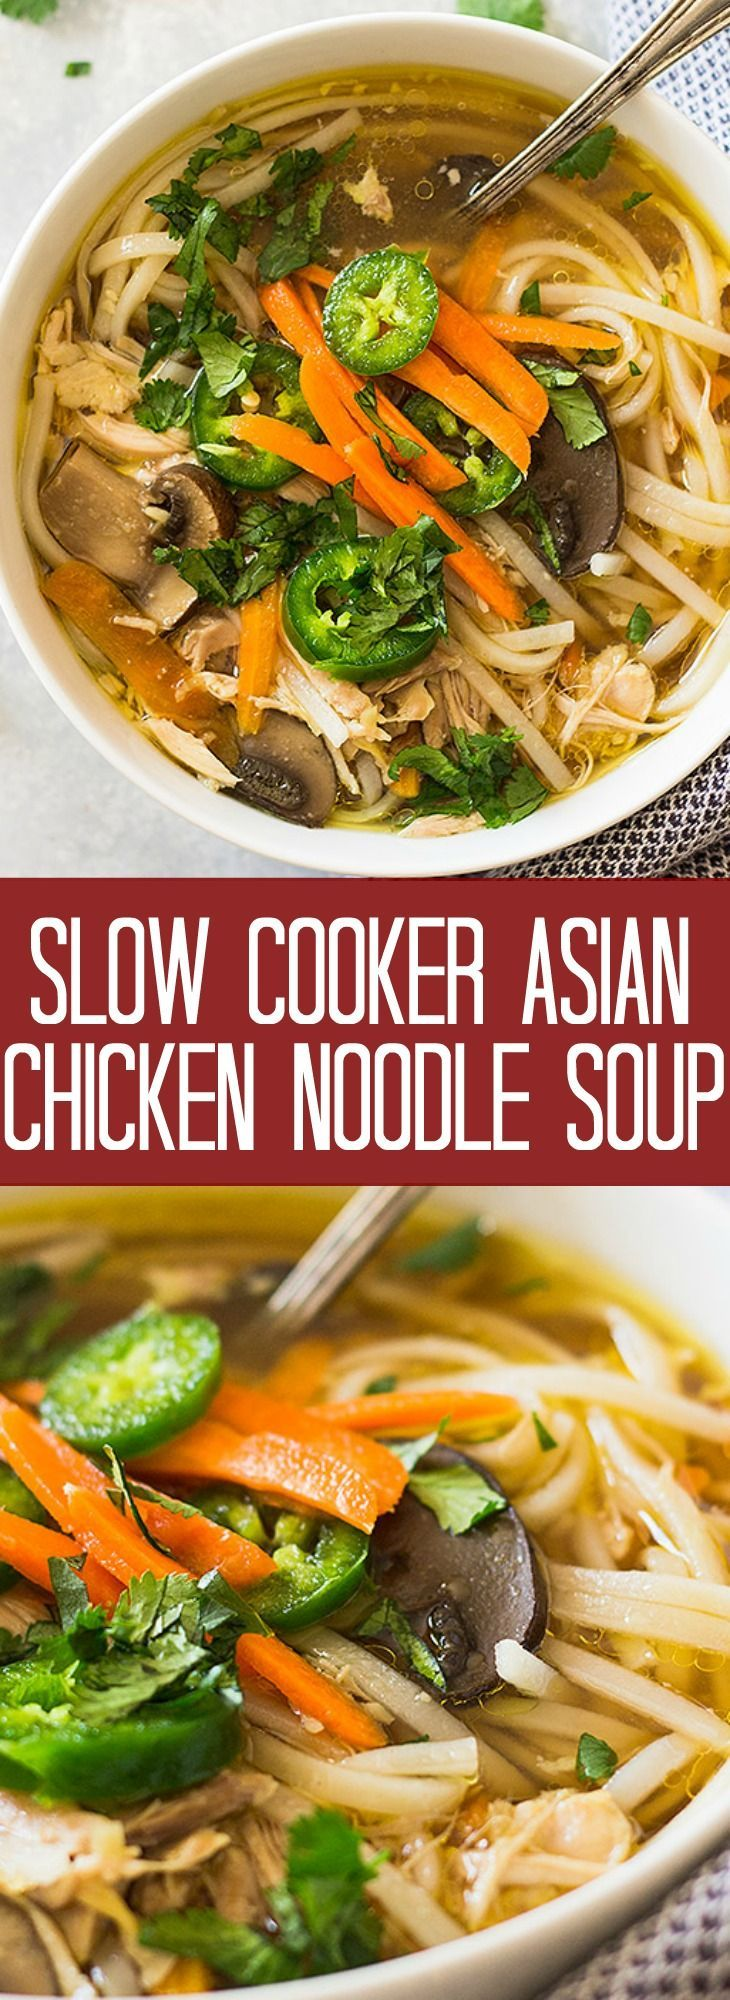 This Slow Cooker Asian Chicken Noodle Soup puts a twist on the classic. With a flavorful broth, mushrooms, ginger, garlic, chicken thighs and noodles all made in the crockpot!